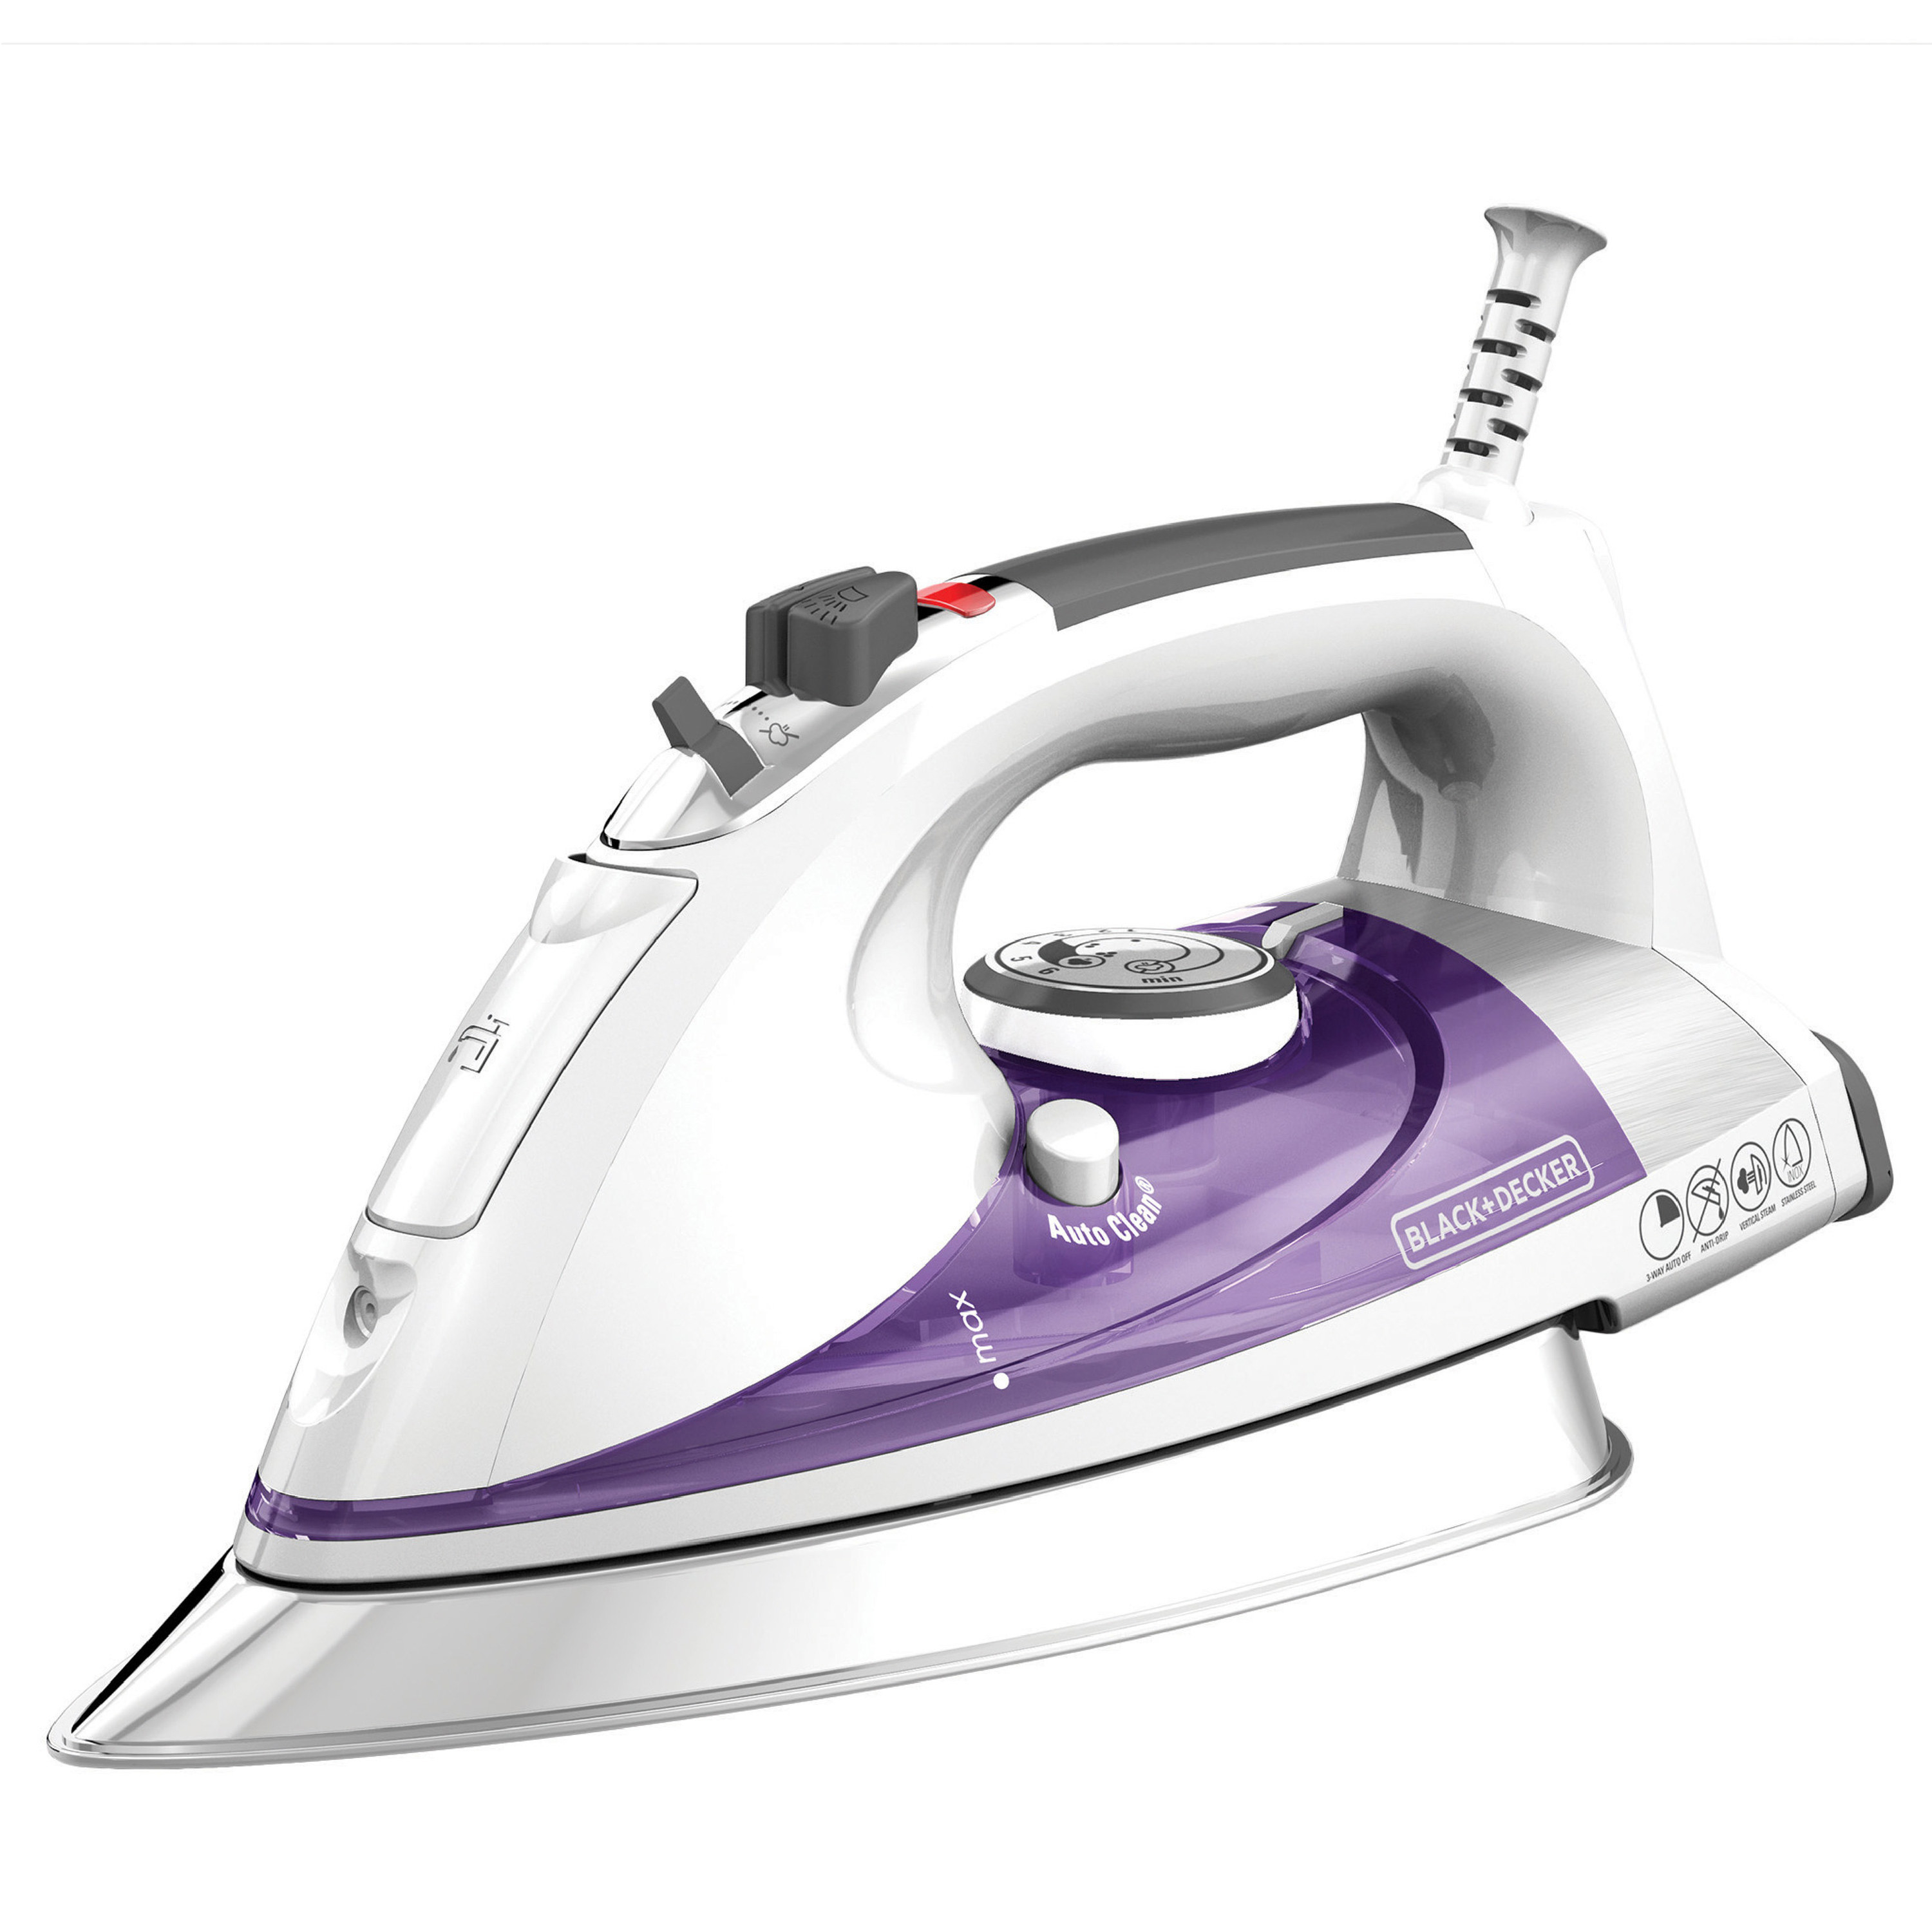 the white and purple iron